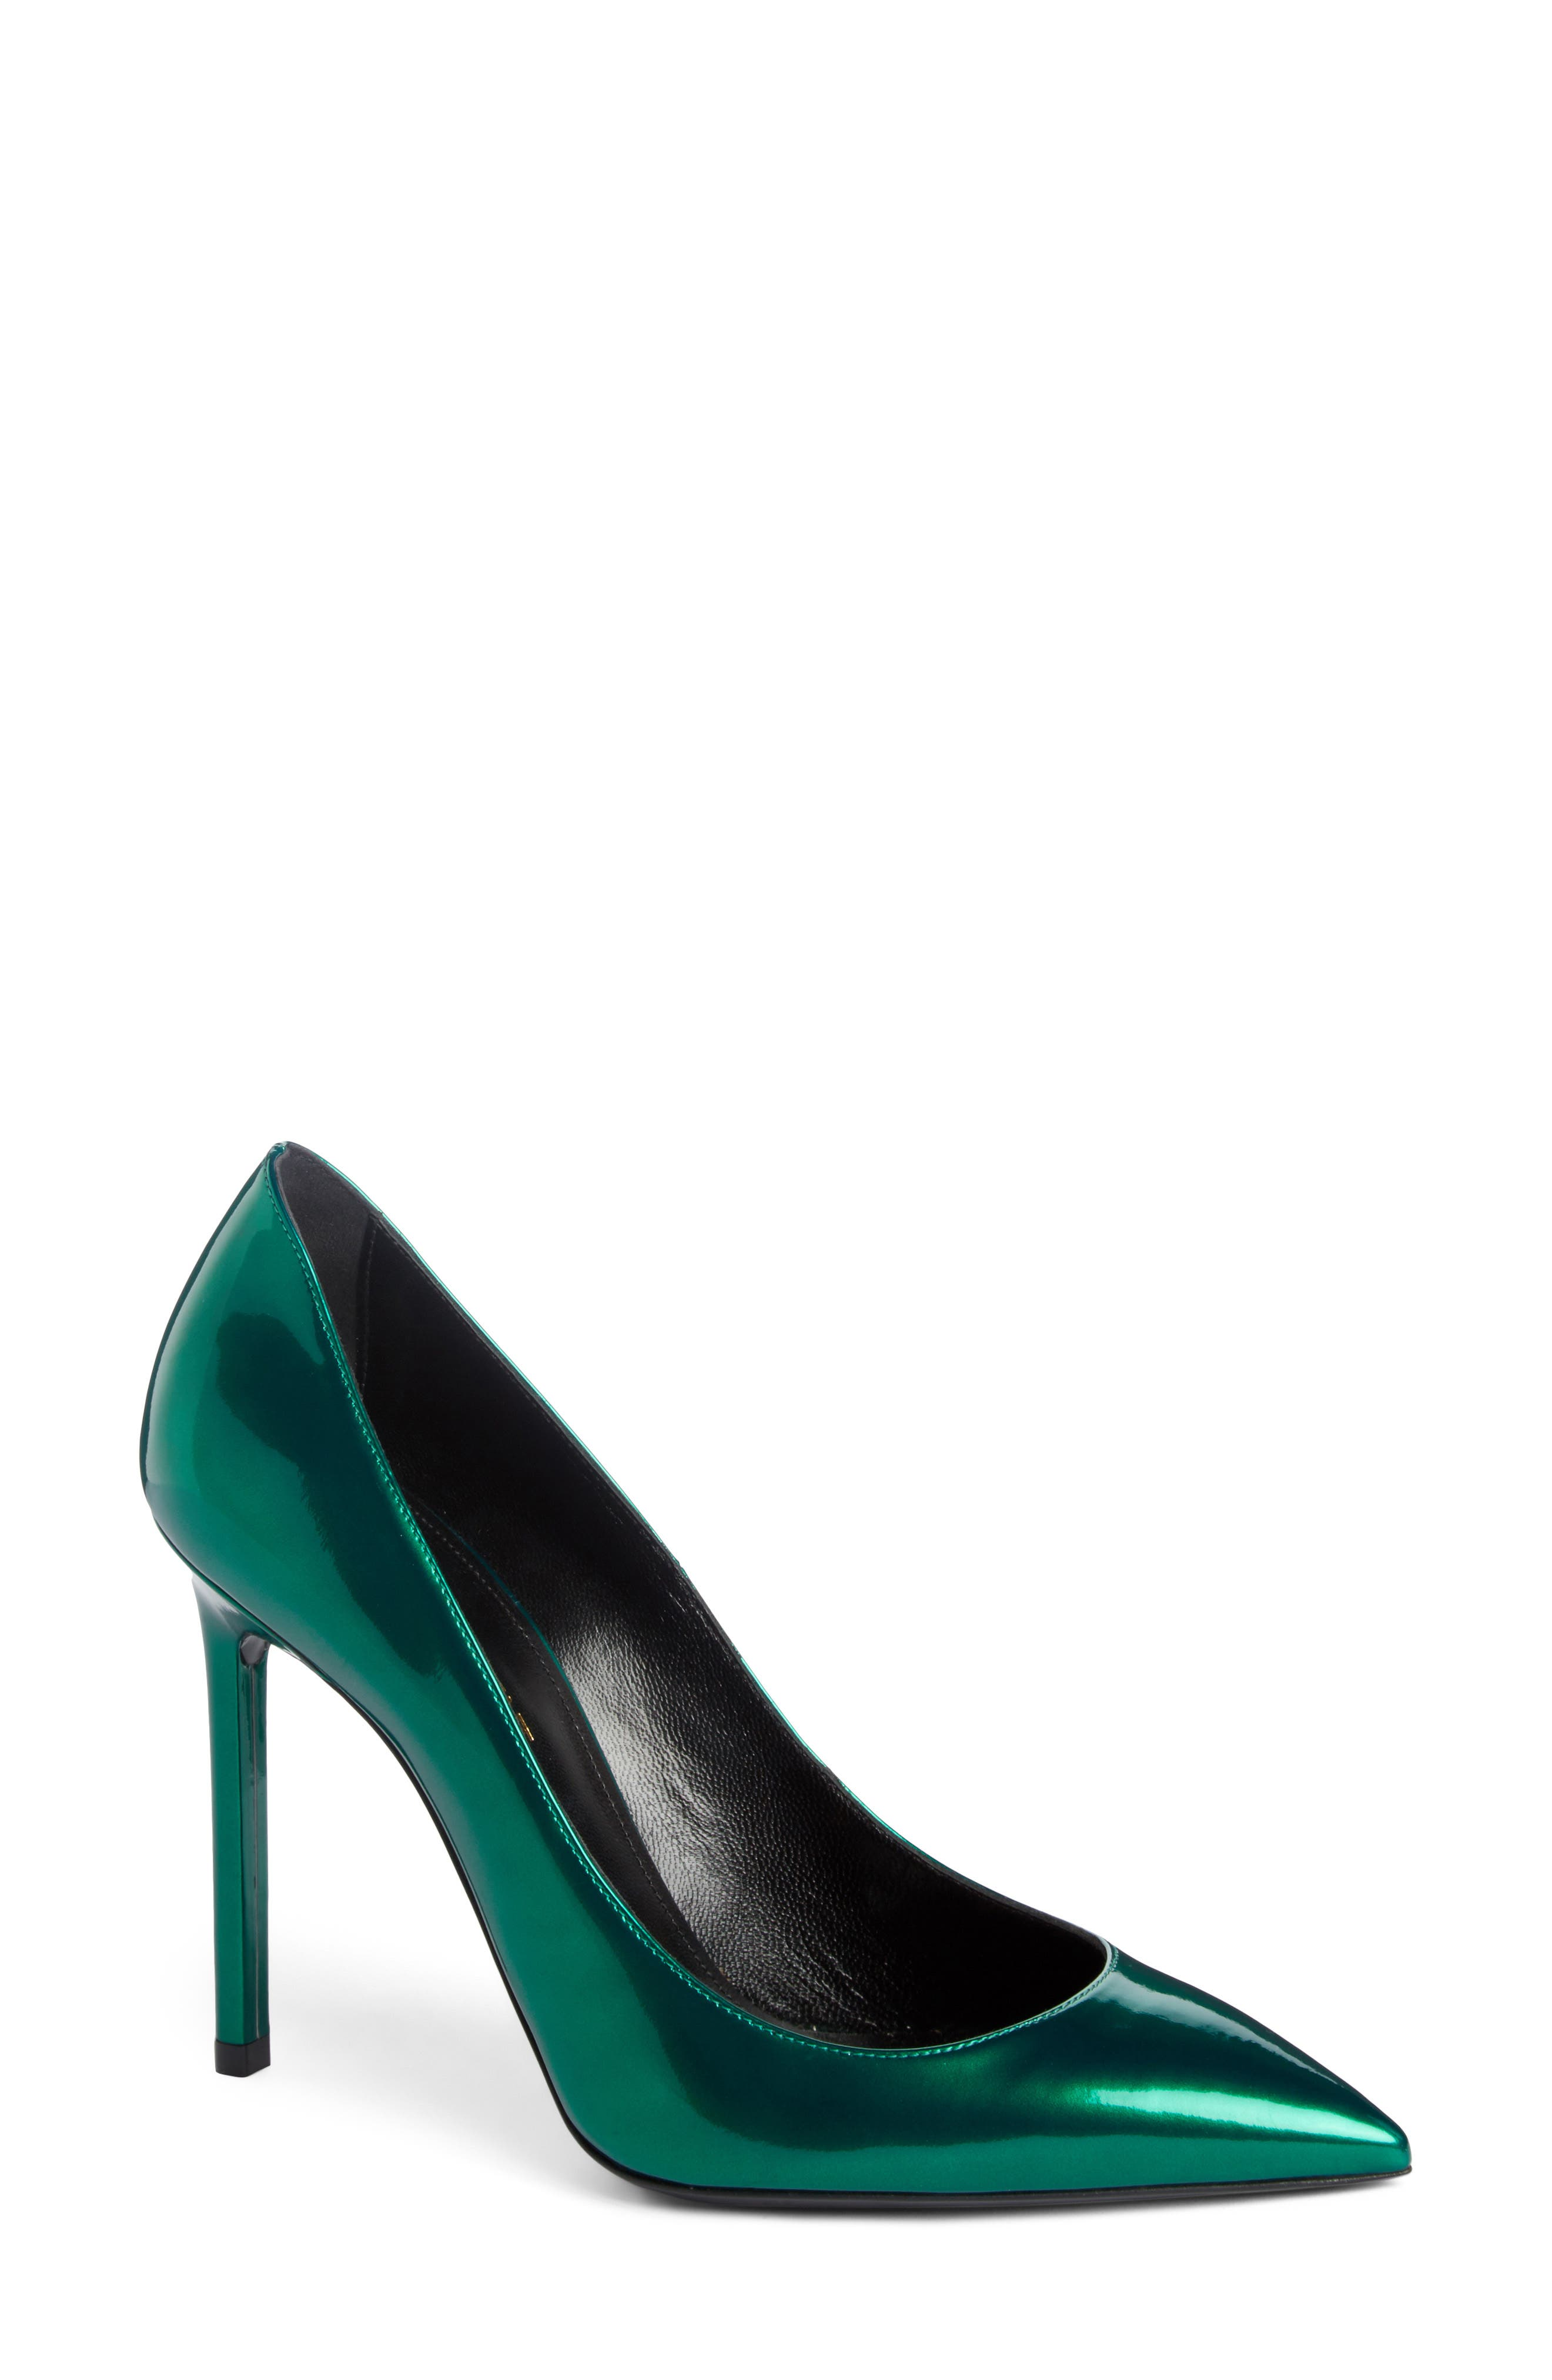 Saint Laurent Anja Pump (Women)